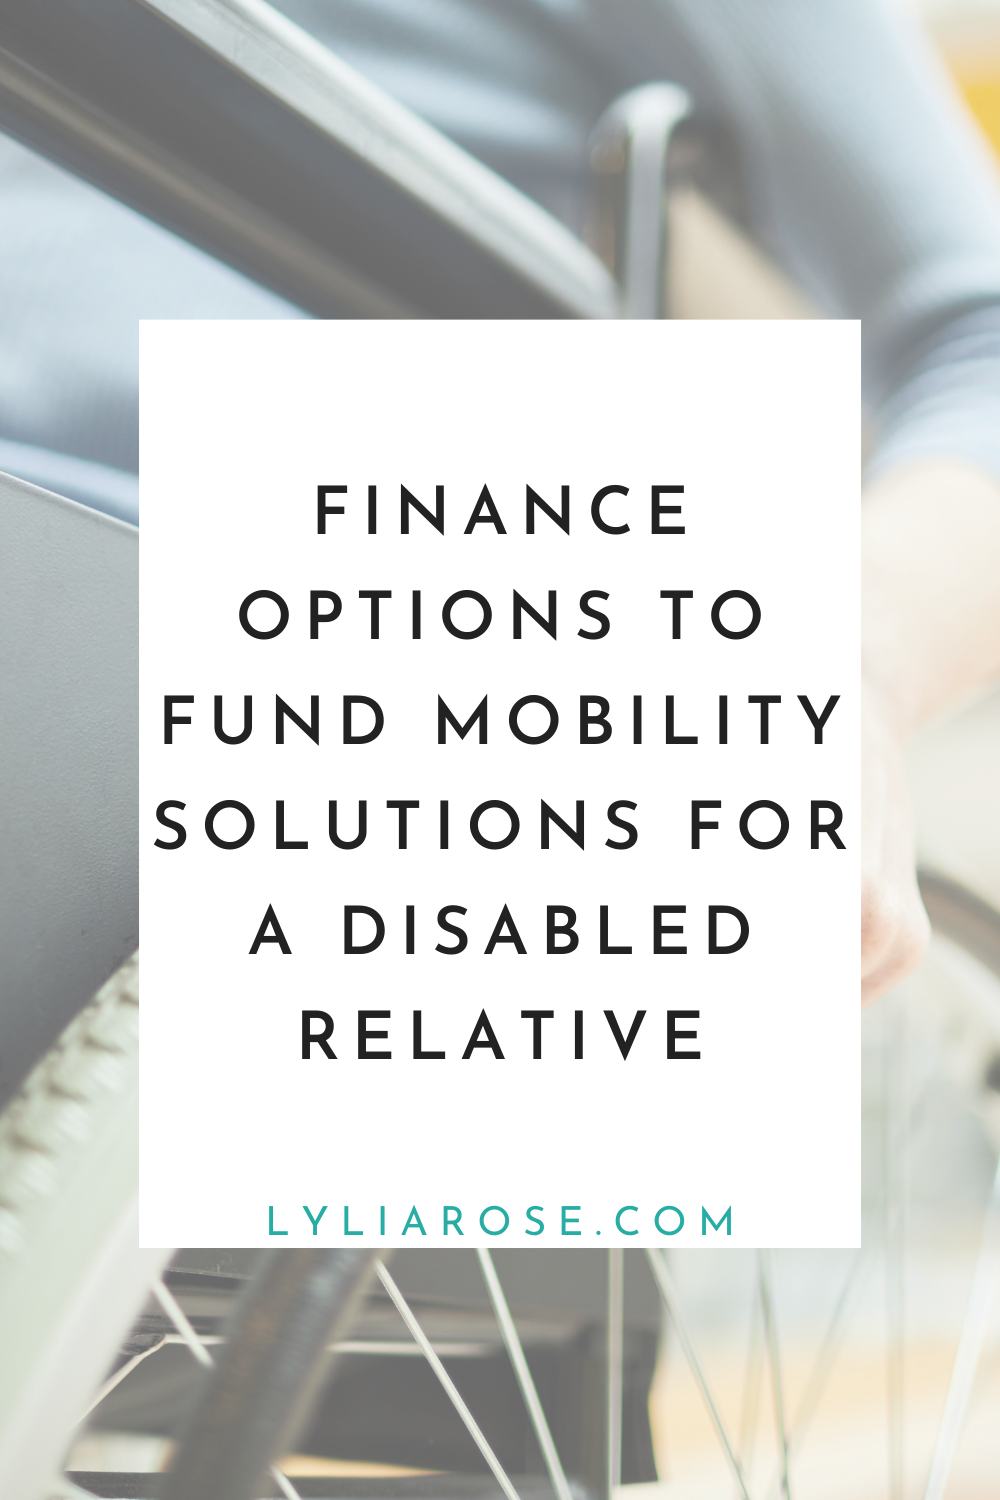 Finance options to fund mobility solutions for a disabled relative